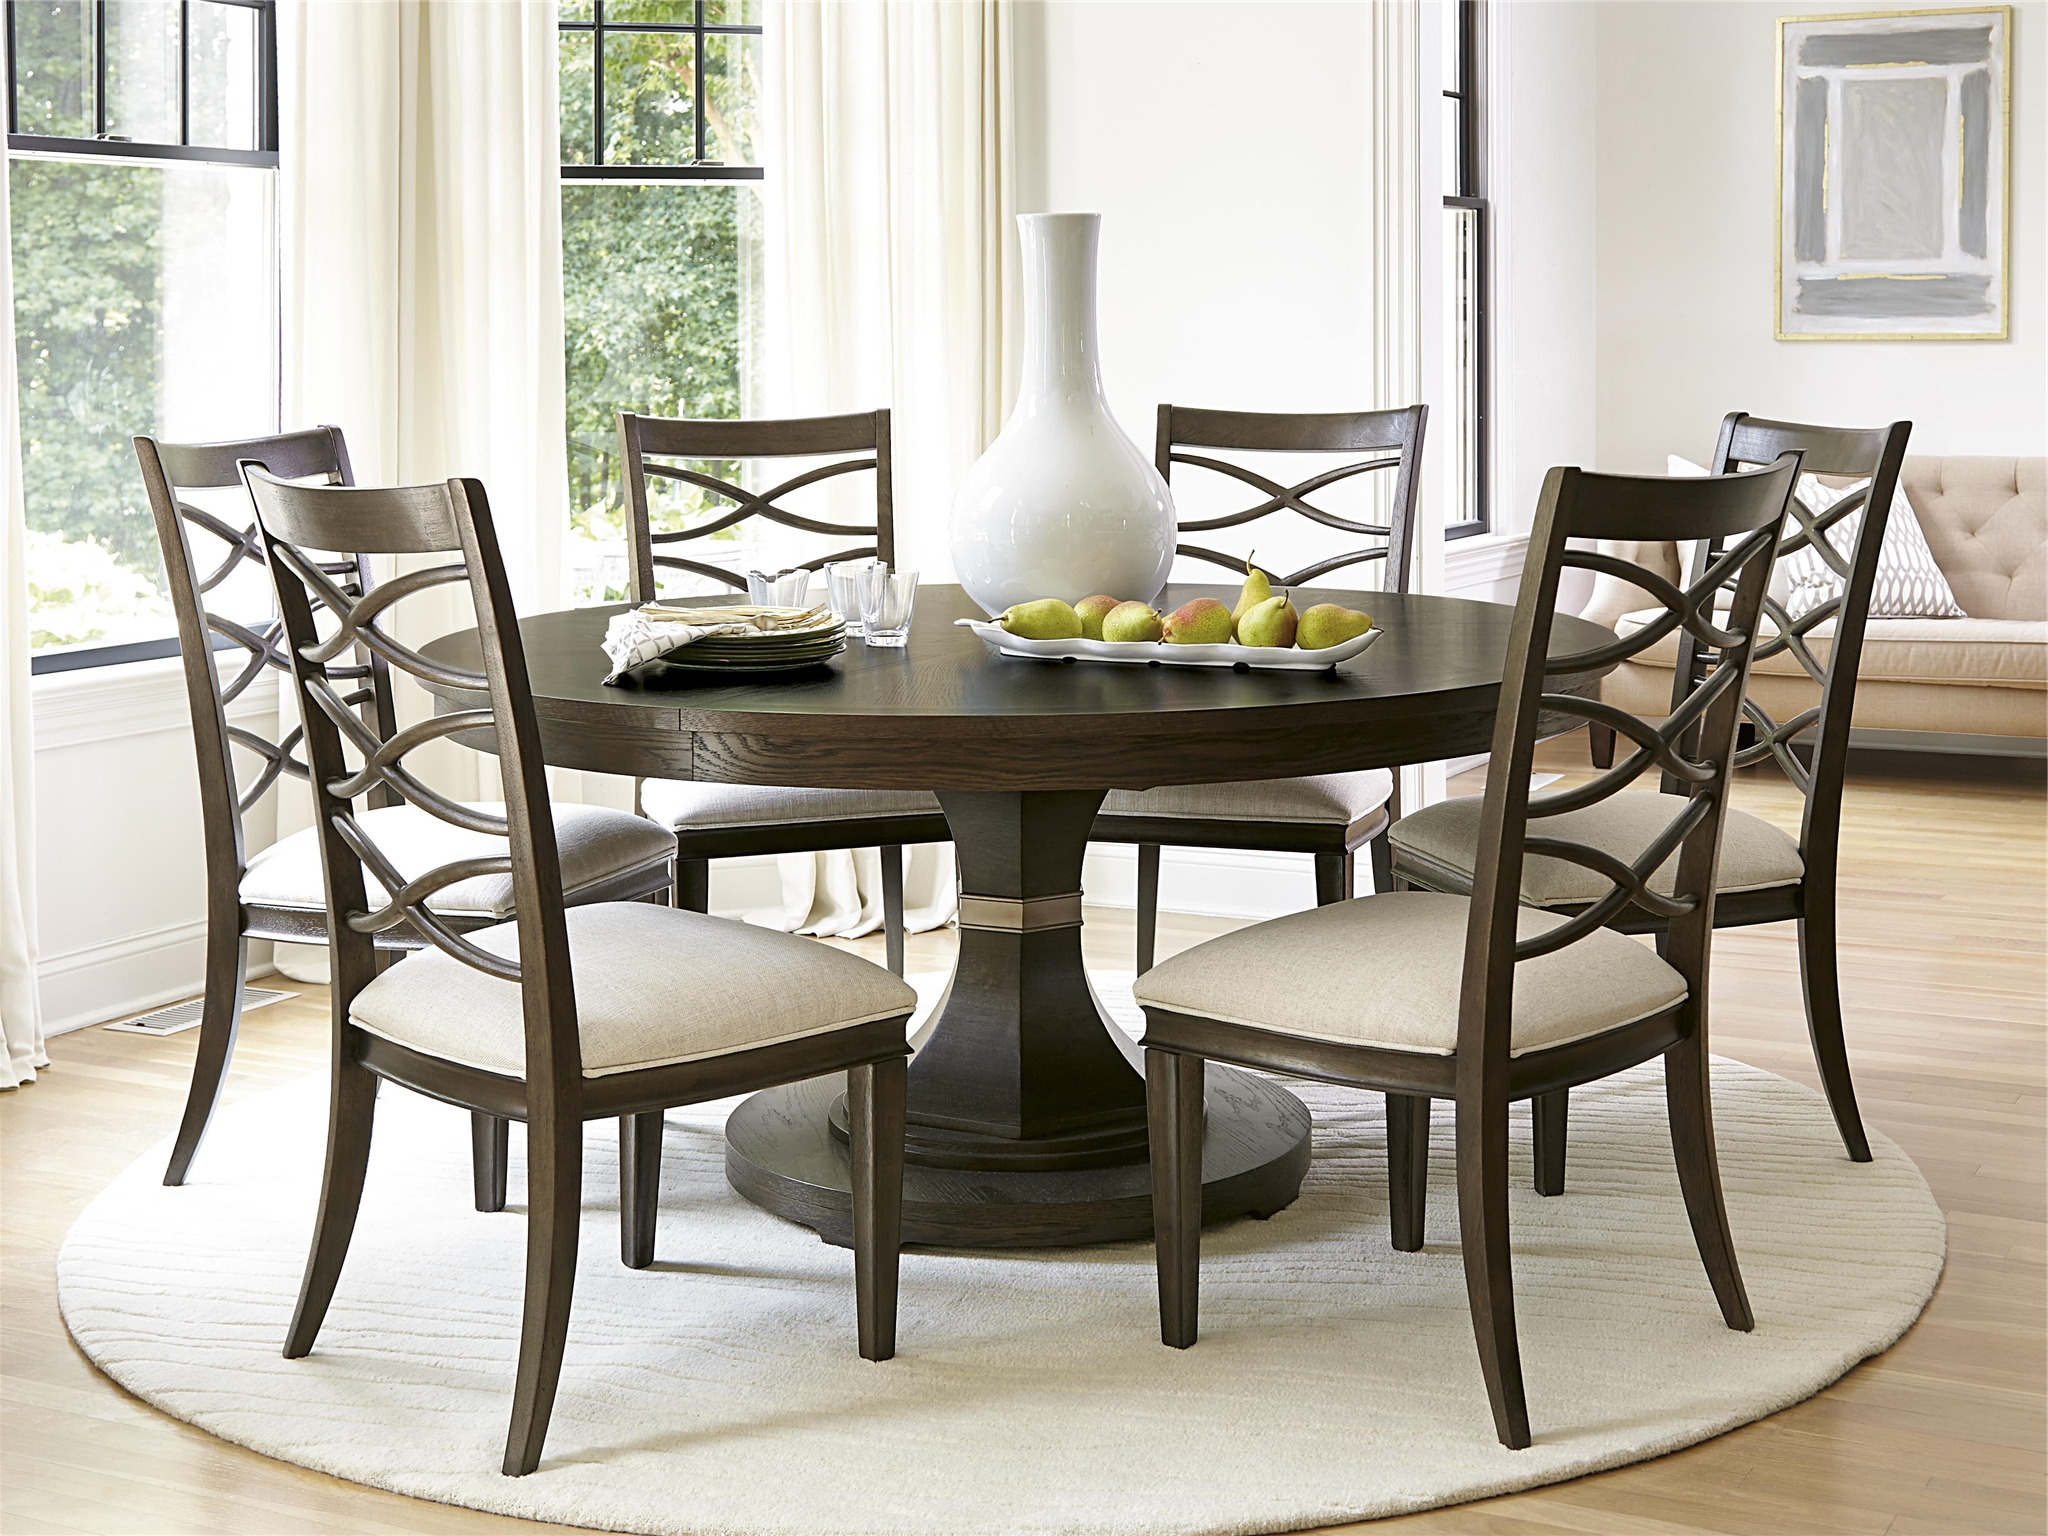 Grady 5 Piece Round Dining Sets Throughout Current Brilliant Ideas Of Round Dining Room Table With Grady Round Dining (View 10 of 25)